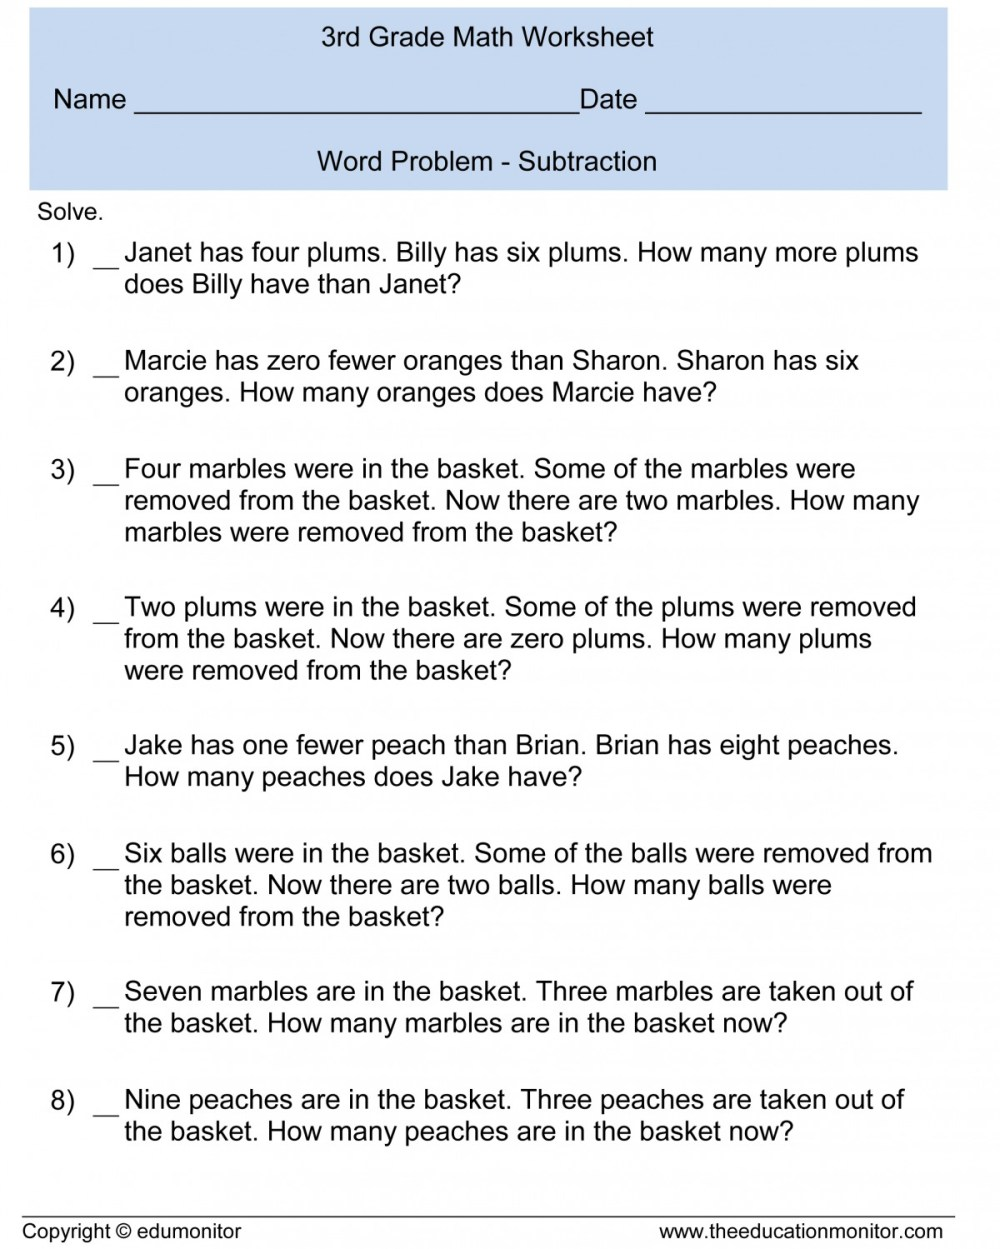 medium resolution of 3rd Grade Math Worksheets Addition Word Problems   Printable Worksheets and  Activities for Teachers